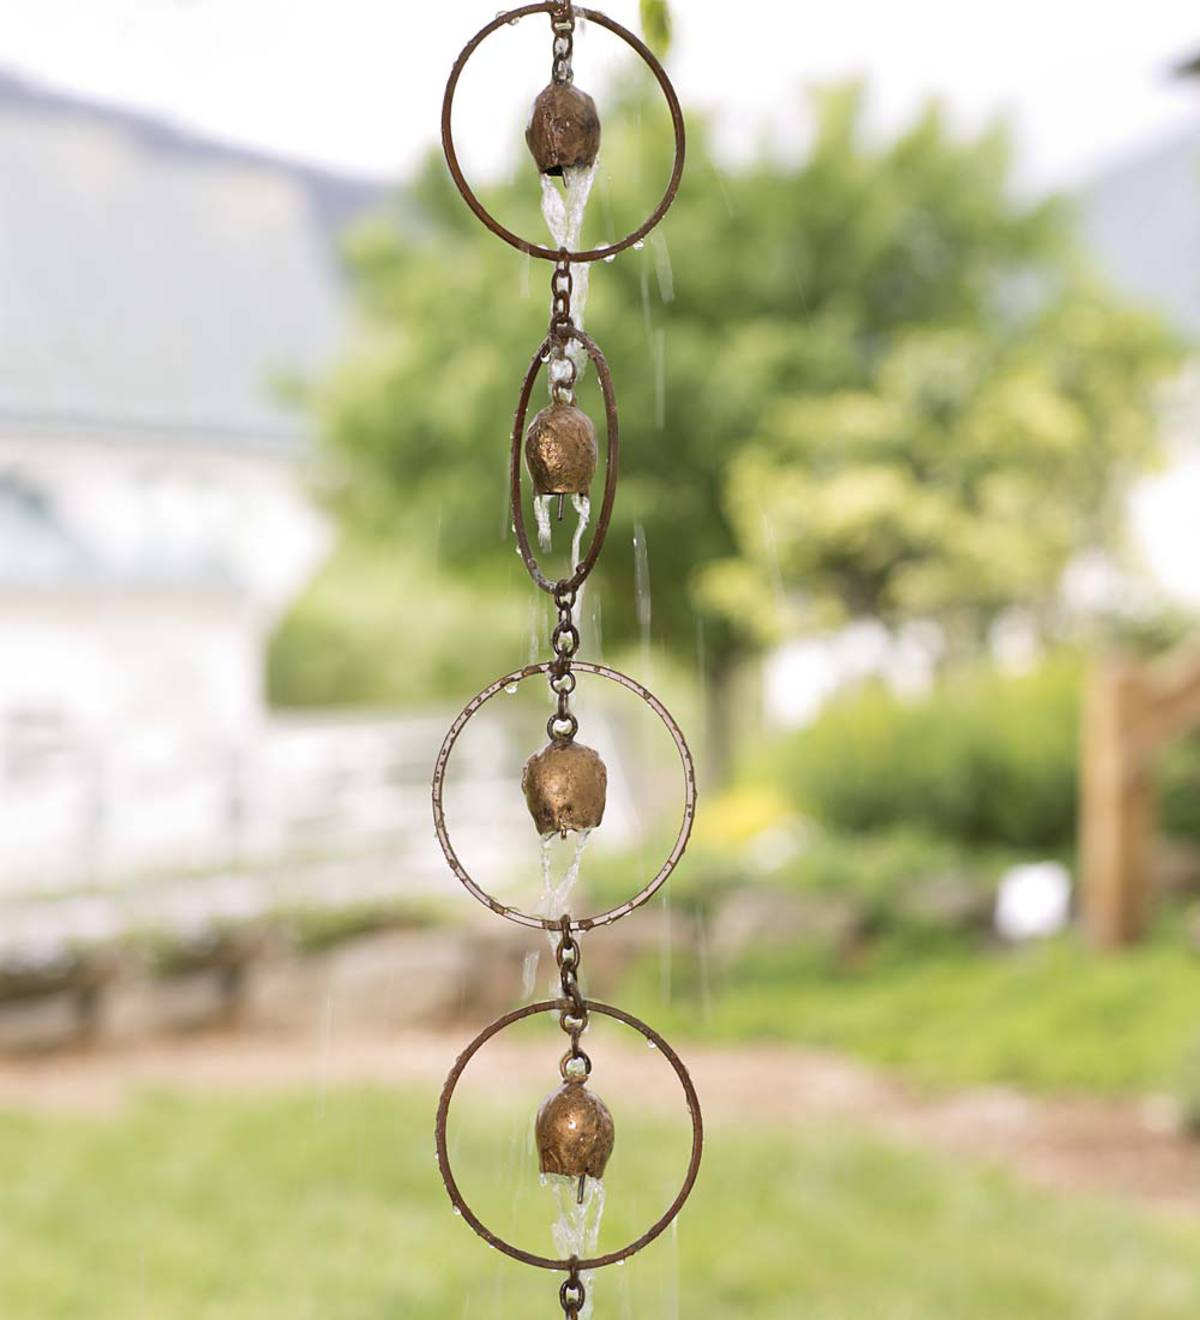 Bell Rain Chain Rain Chains Amp Downspouts Landscaping